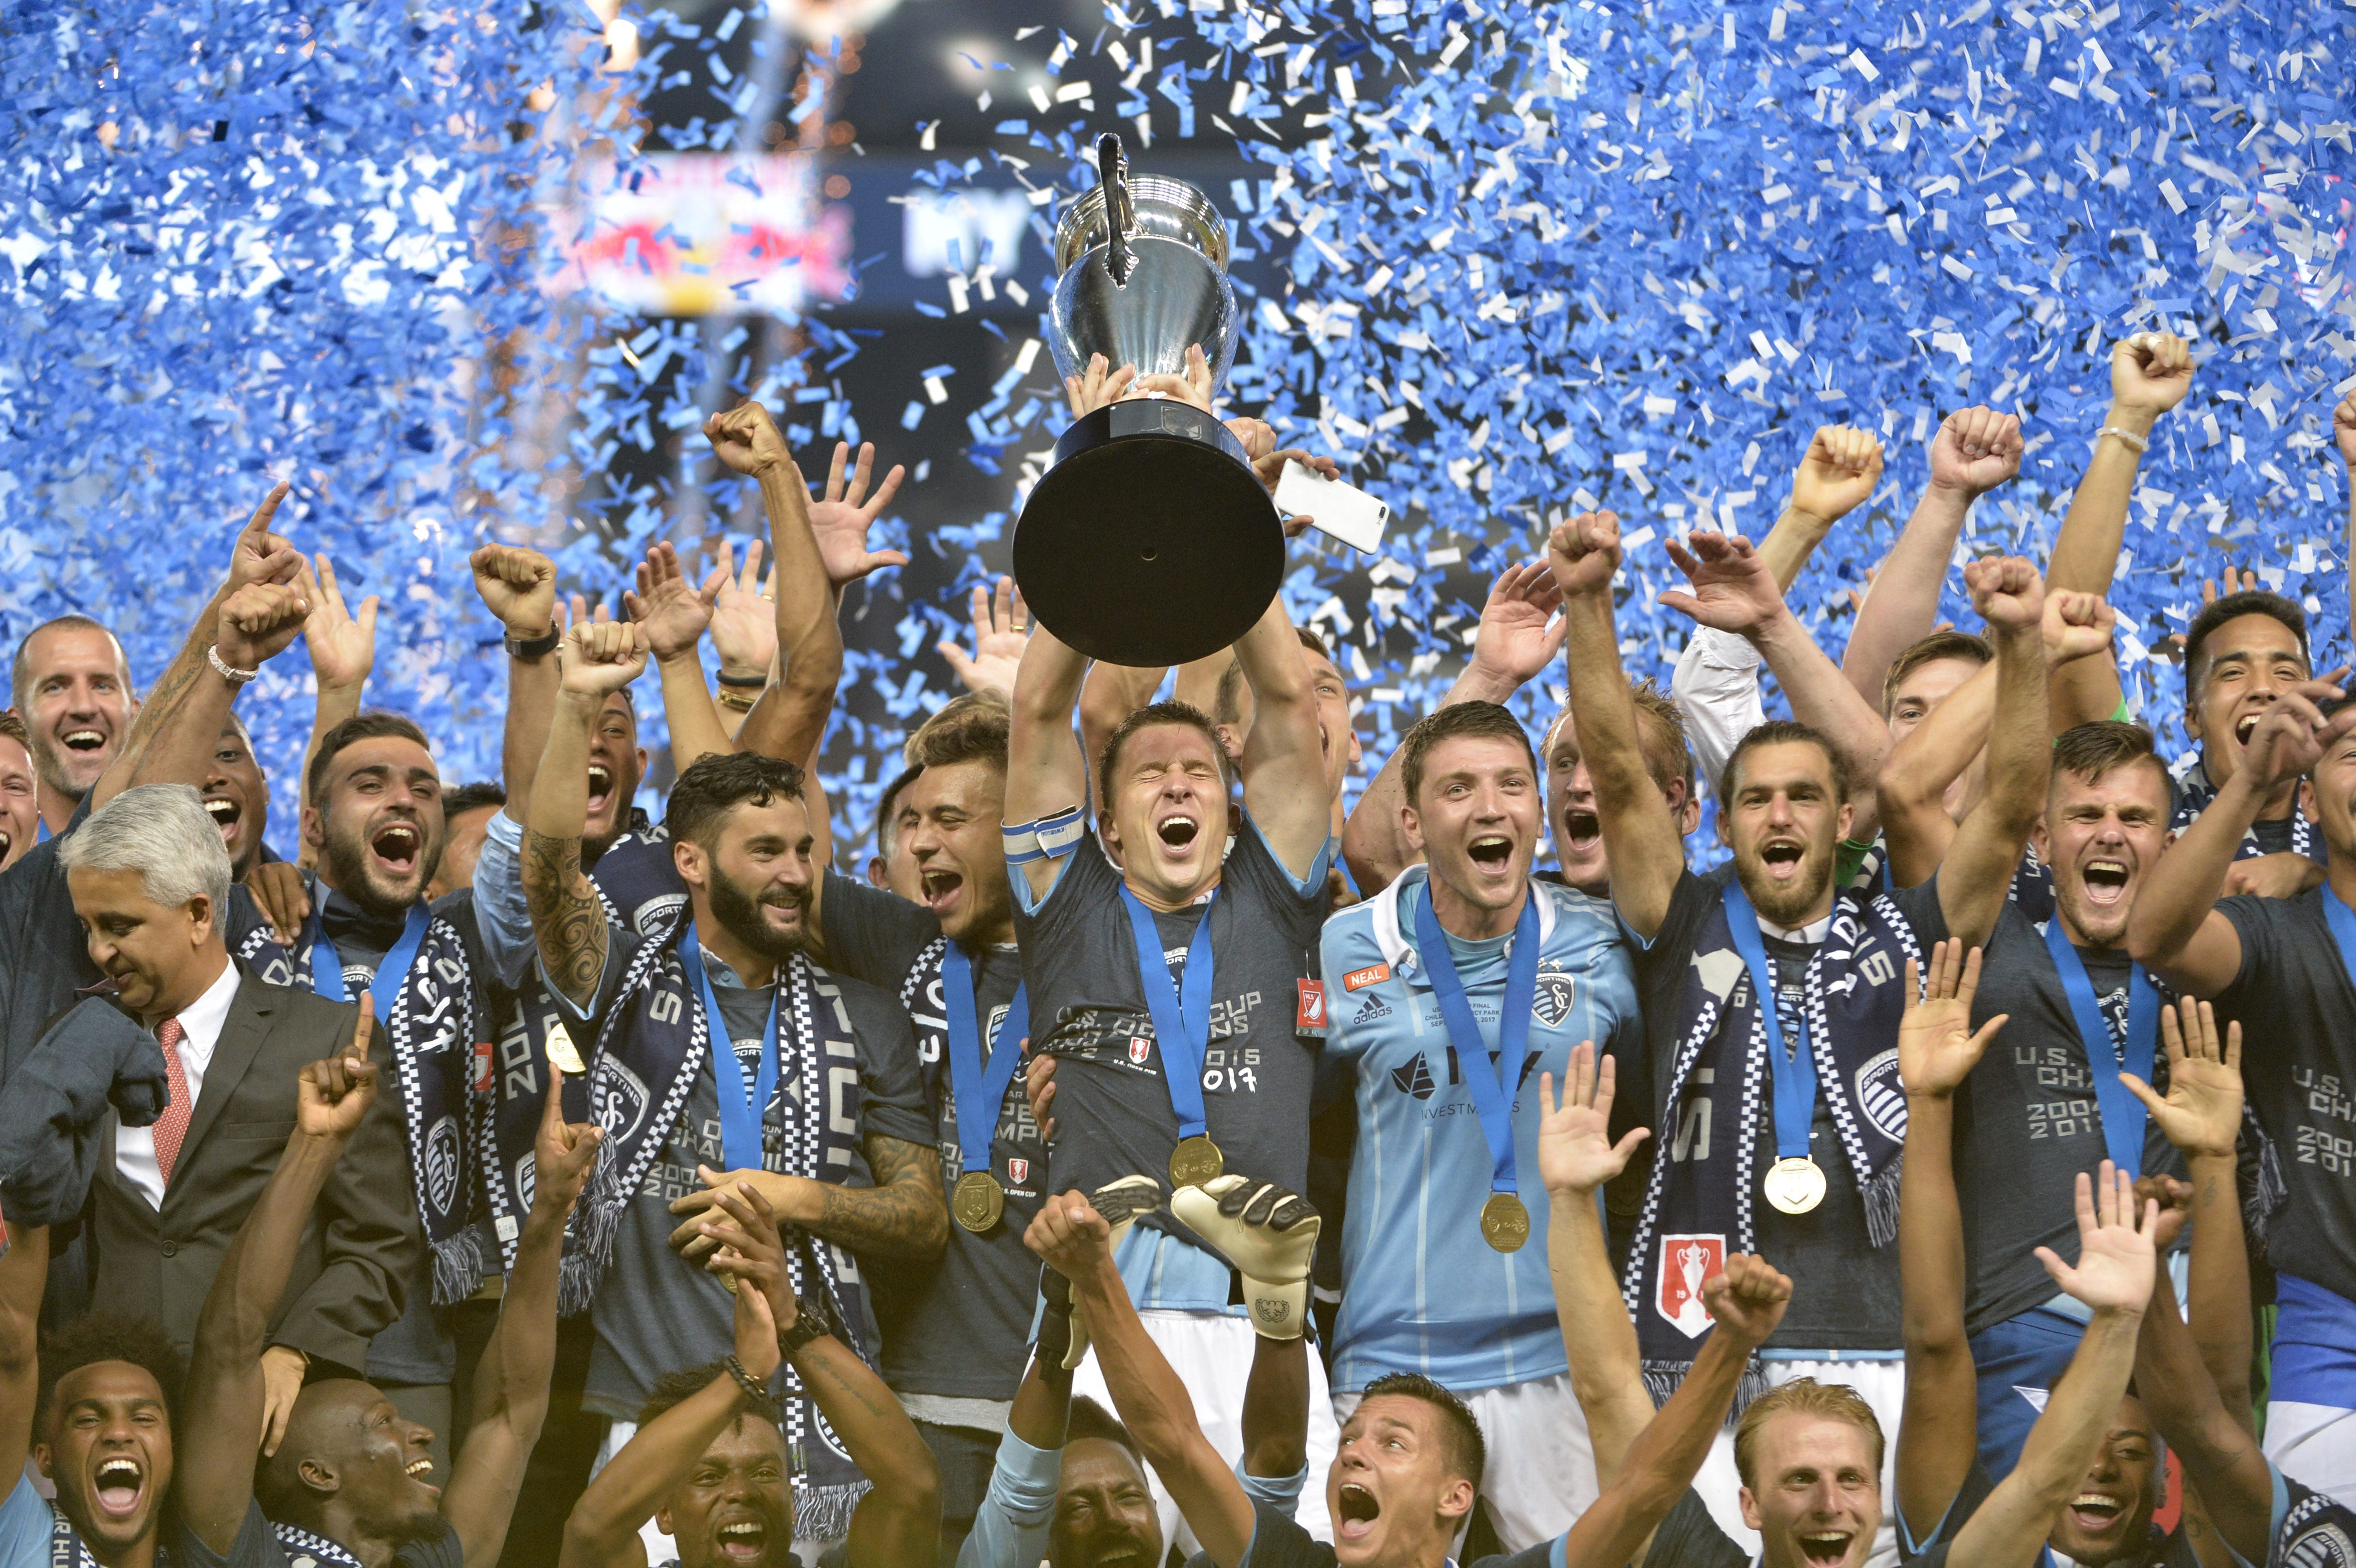 Sporting Kansas City wins its fourth U.S. Open Cup title